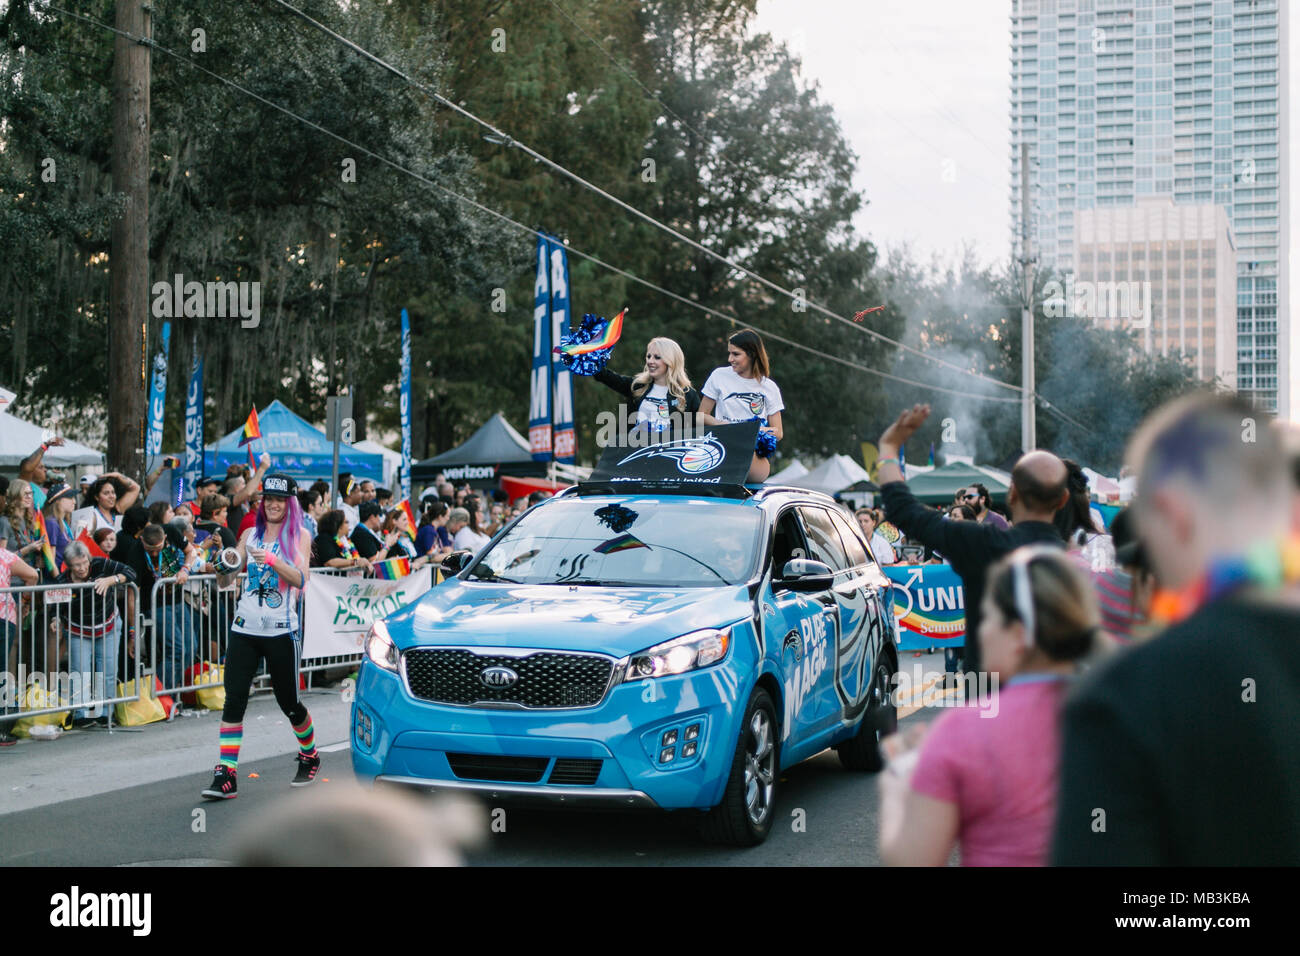 Orlando Magic Cheerleaders at the Orlando Pride Parade (2016). - Stock Image